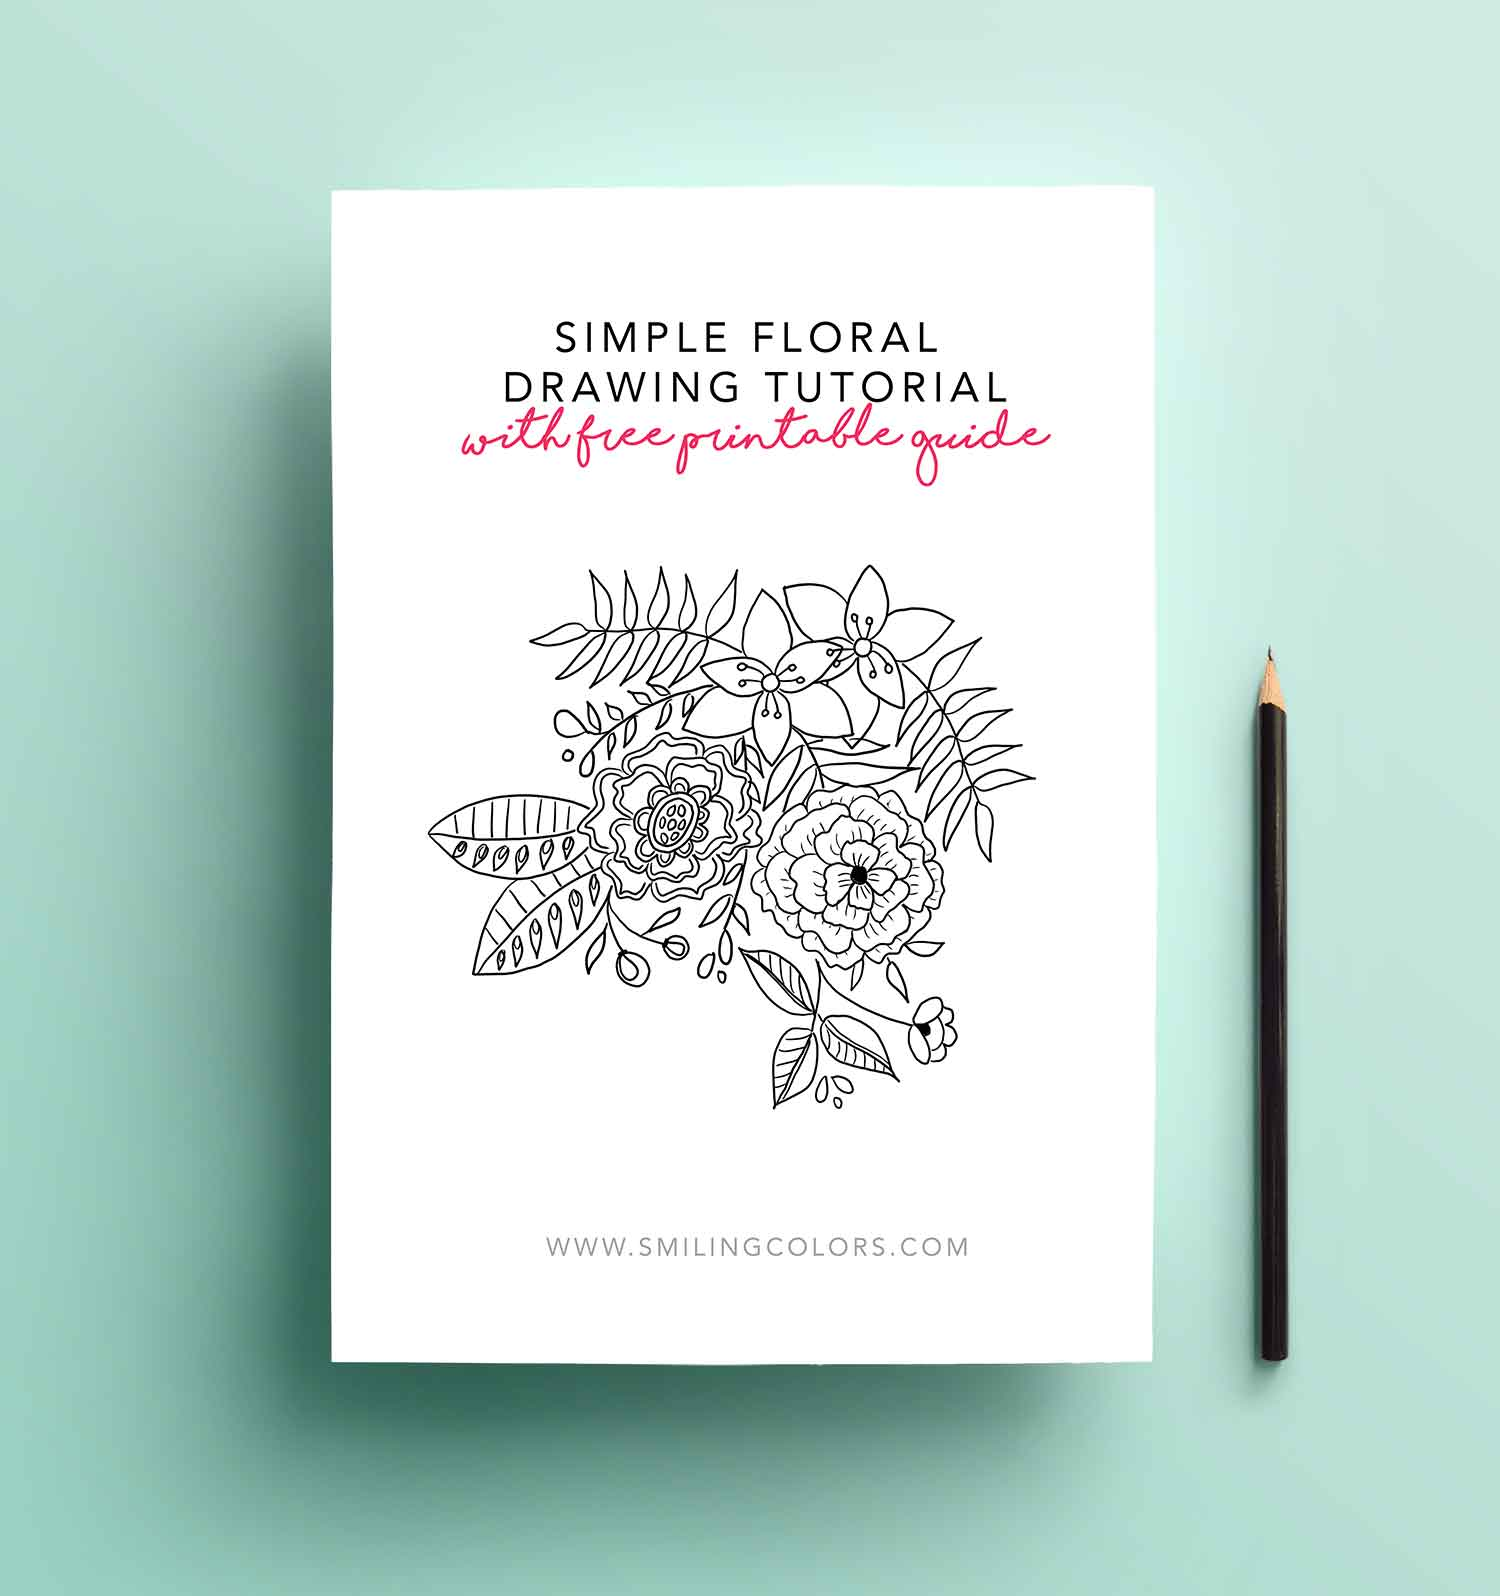 So im hoping this simple floral drawings tutorial will make you pull out your pen and paper and start doodling right away